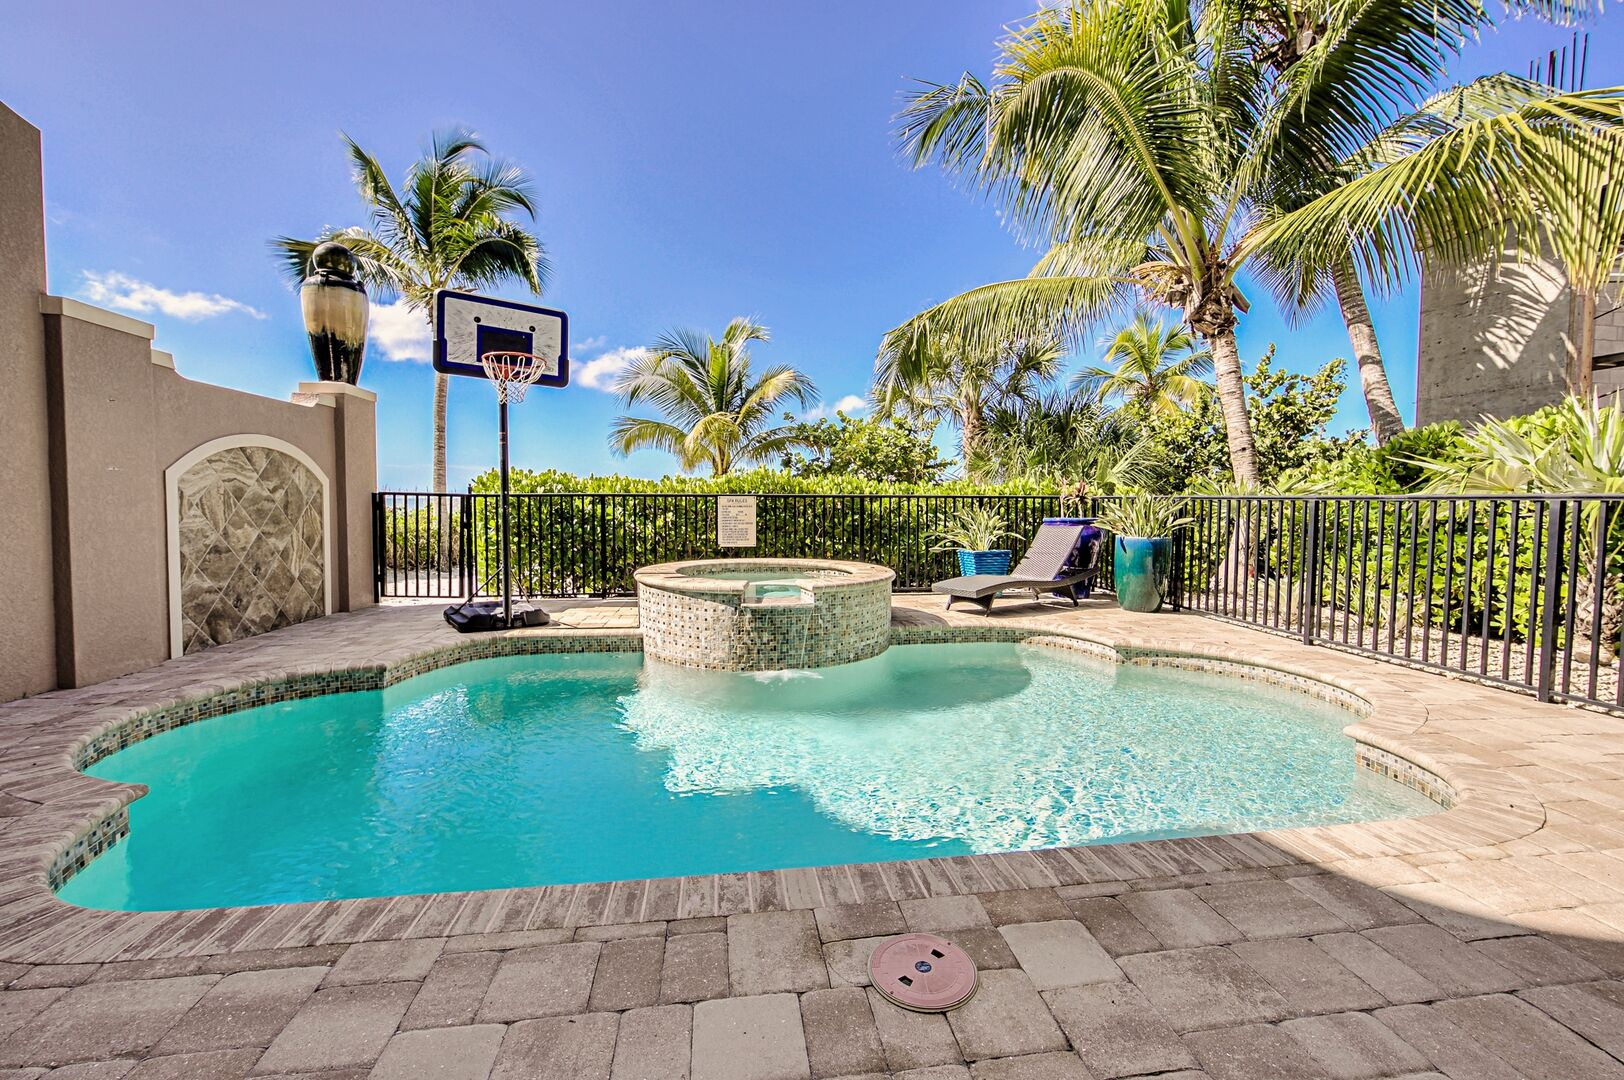 Fenced Private Pool and Jacuzzi with Lounge Chair and Basketball Hoop.